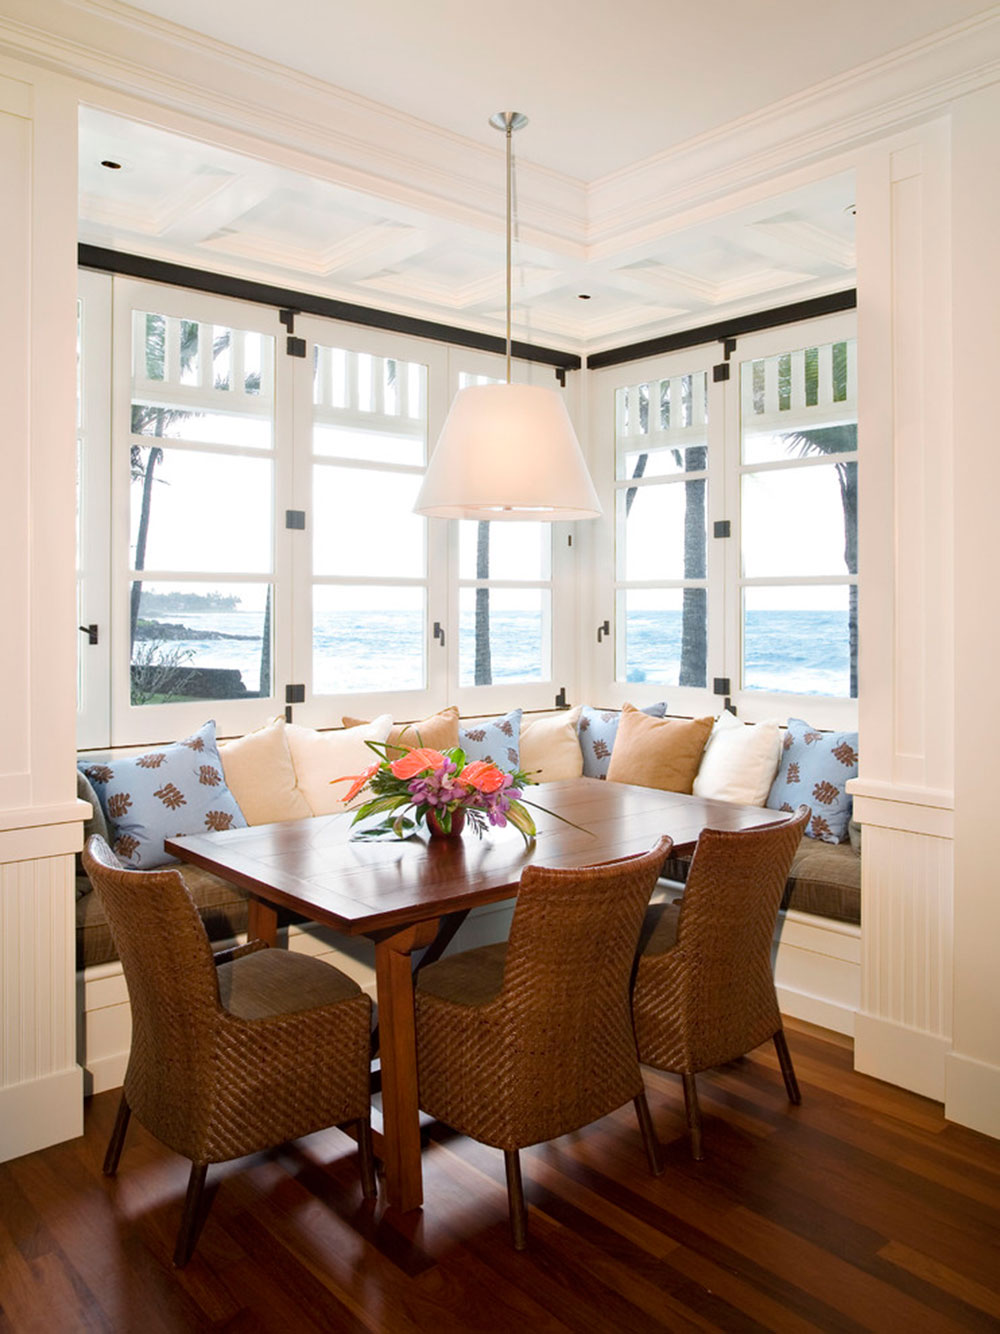 Breakfast Nook Design Ideas For Awesome Mornings11